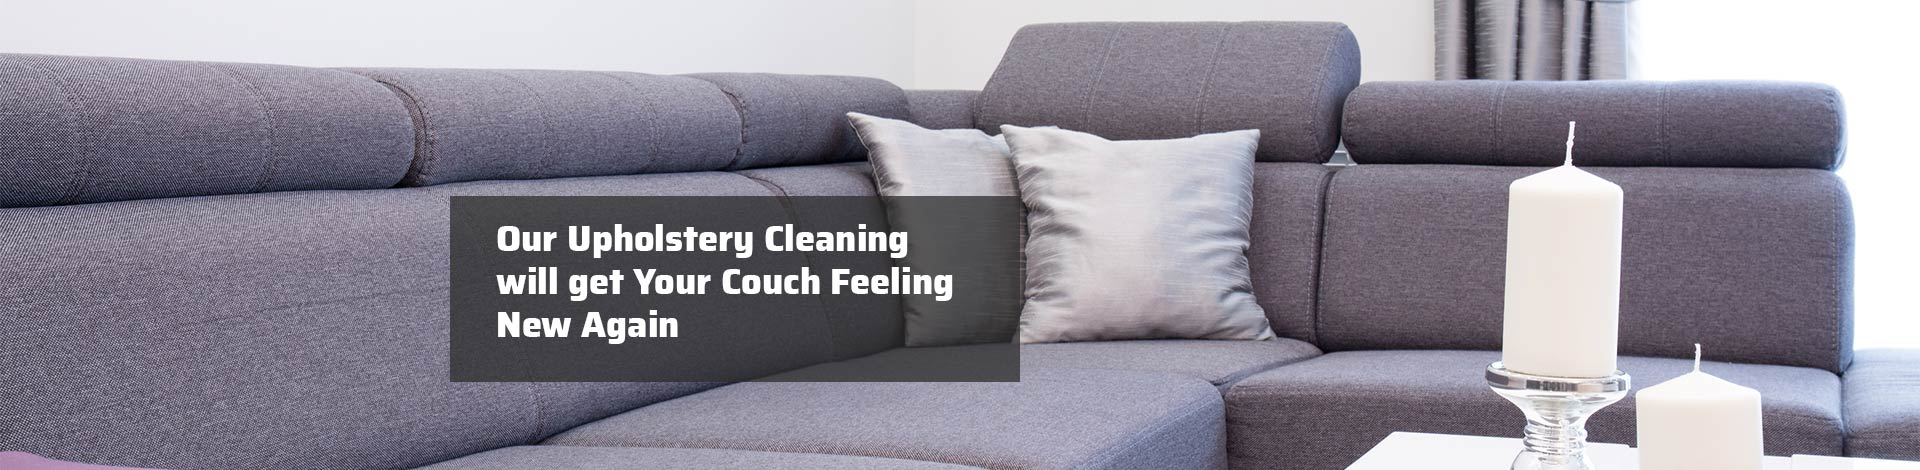 Our Upholstery Cleaning will get Your Couch Feeling New Again